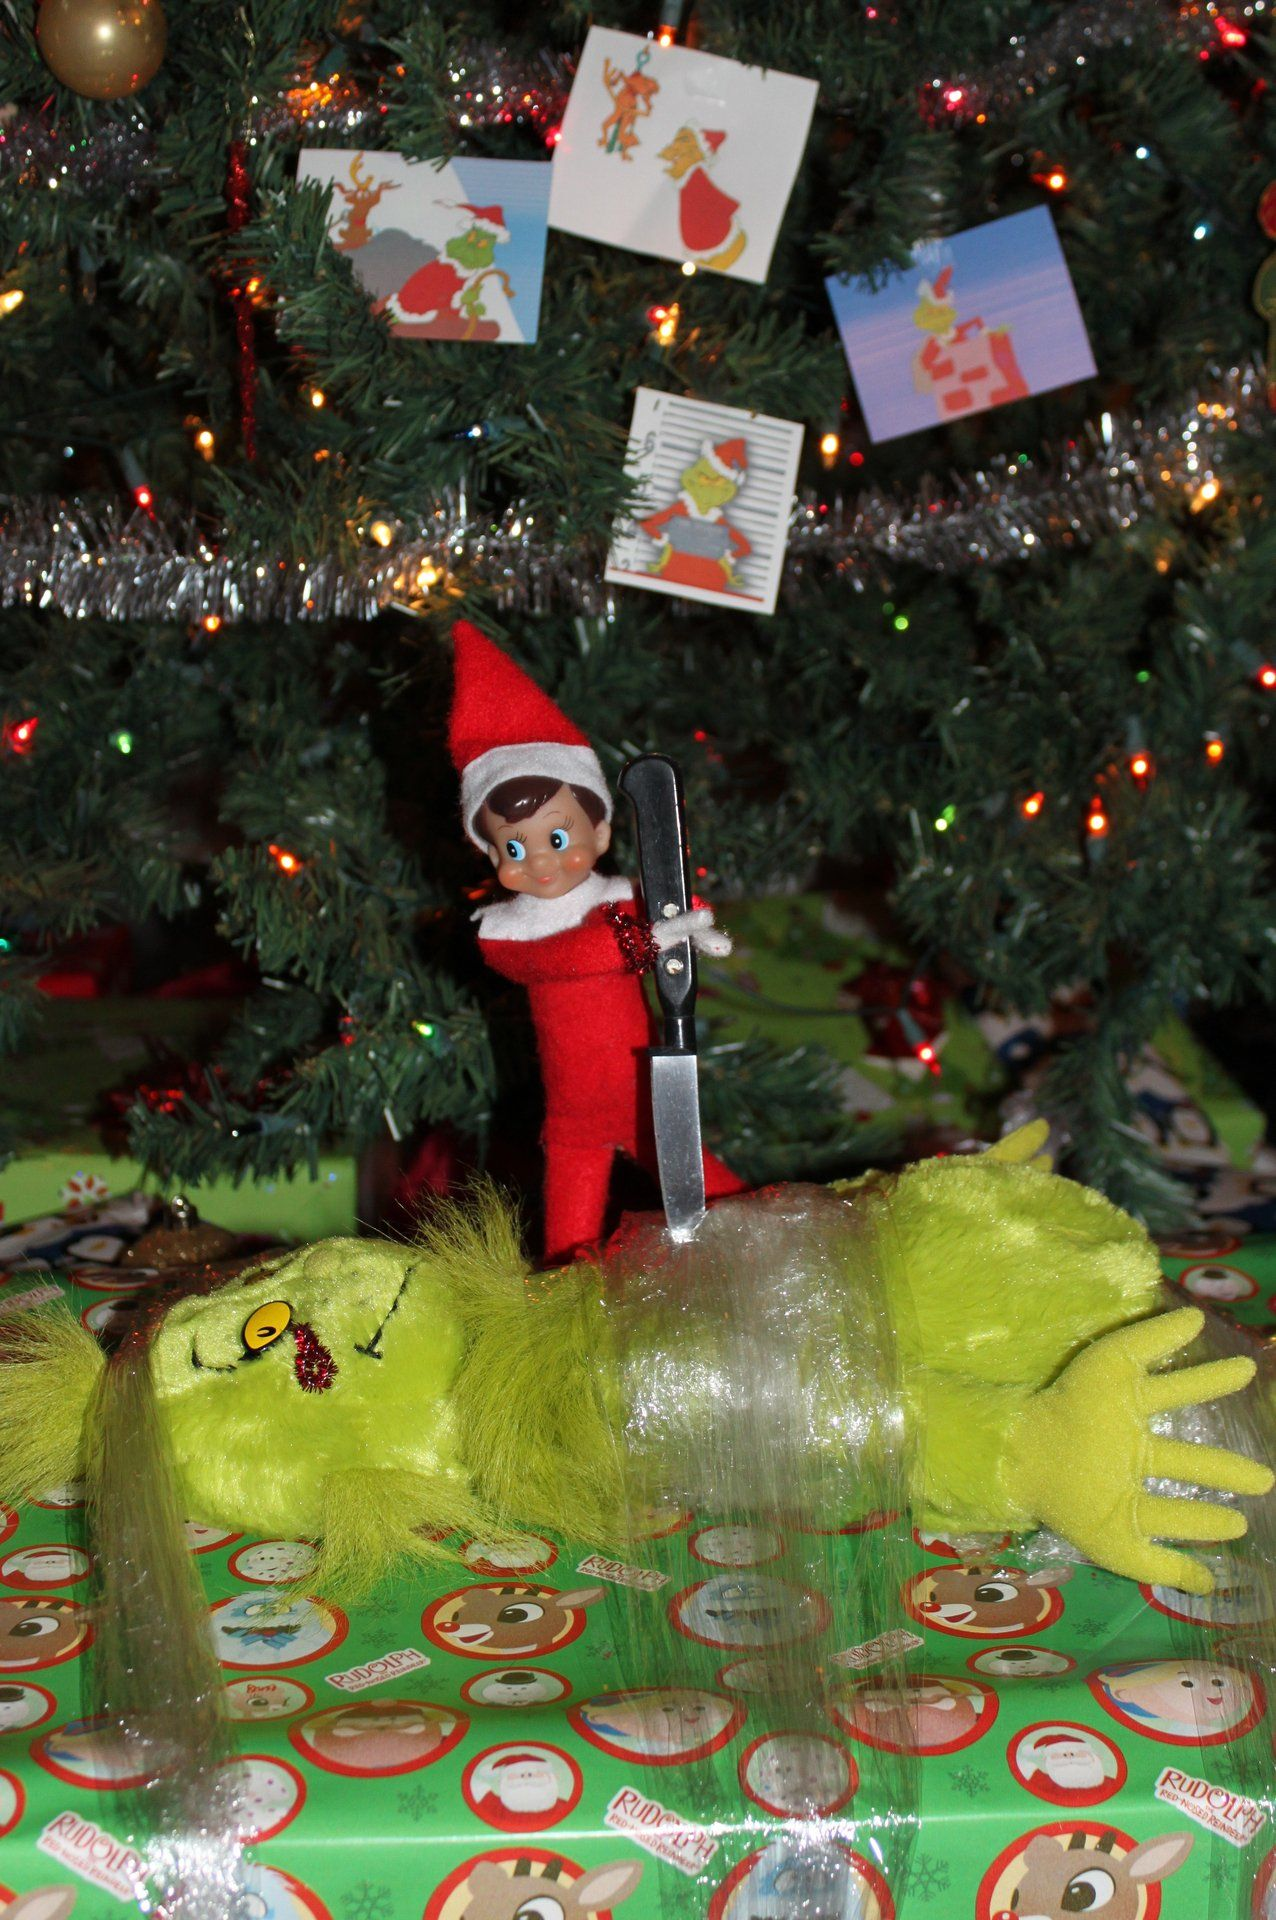 The Most Inappropriate Elf On A Shelf Ideas   Someecards Elf On The ...